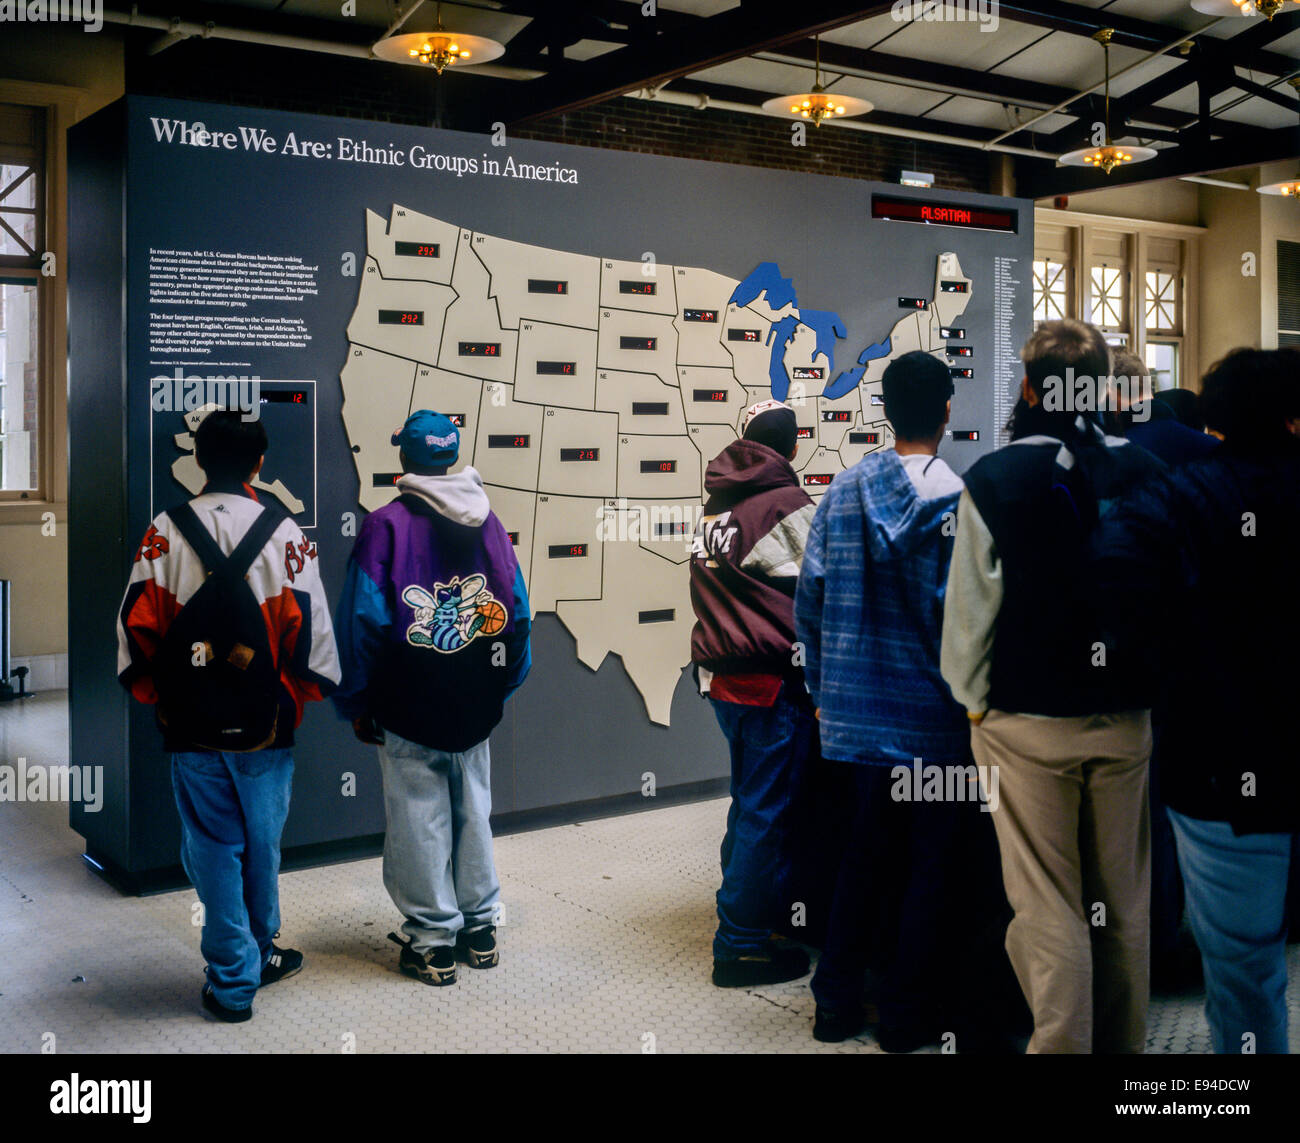 Students By US Ethnic Groups Map Ellis Island Museum New York NY - New york map ellis island